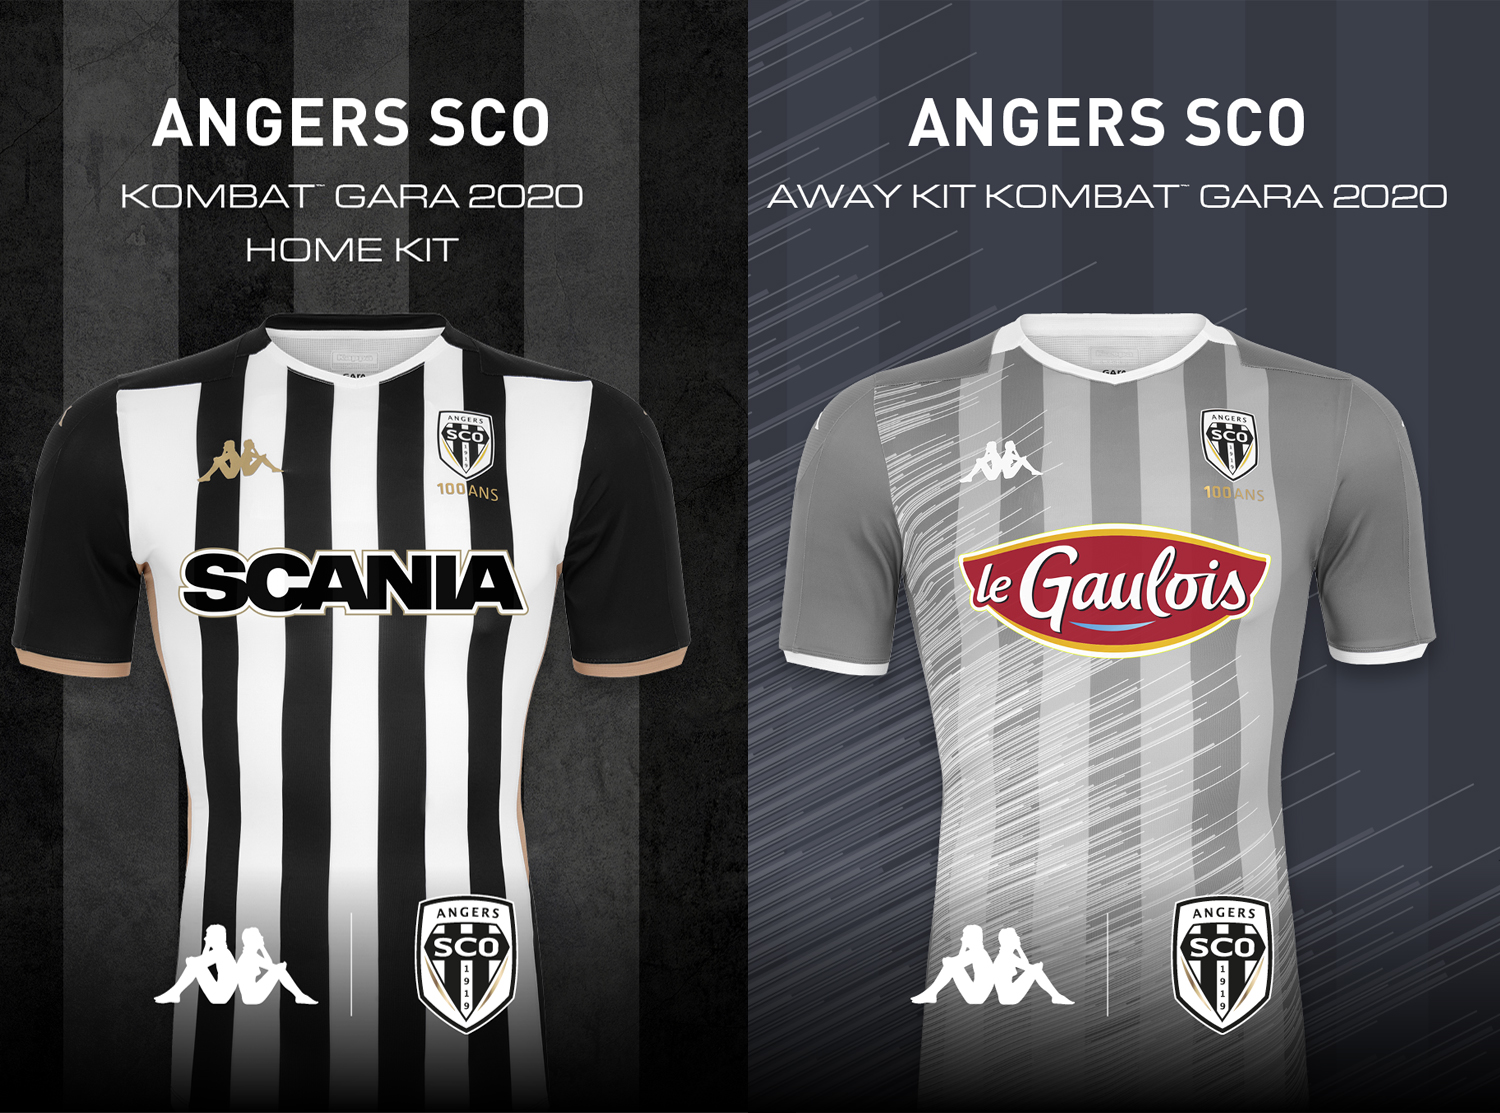 02f5a741e75 visualizzazioni 31. salva. facebook. Kappa® France unveils online the new  Kombat™ Gara 2020 football jerseys for Angers SCO